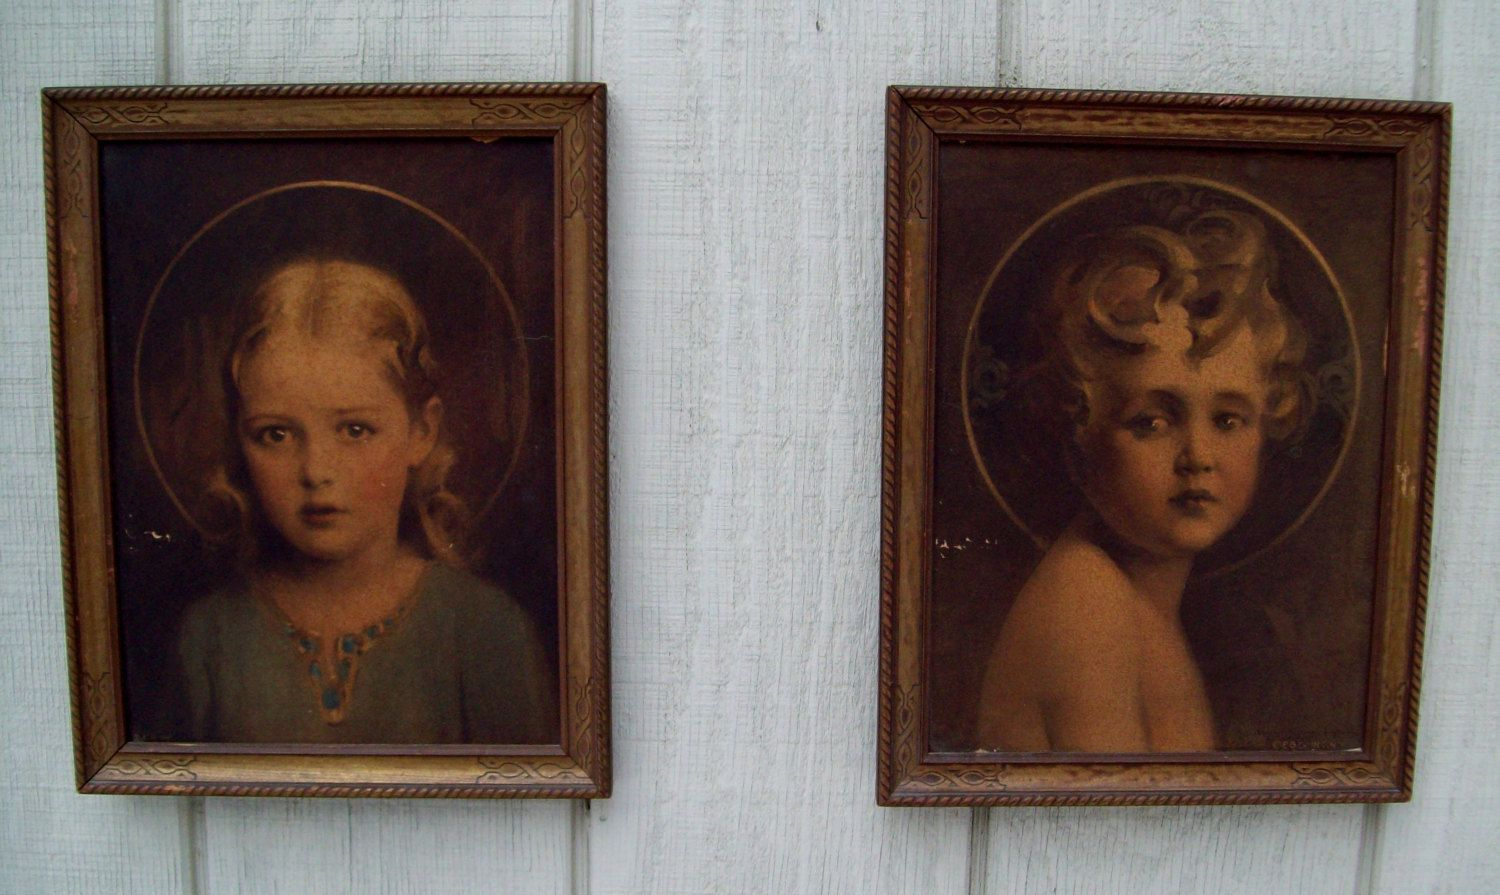 Vintage Child Prints Light Of The World /Mary Most Holy Charles Bosseron Chambers 1920's E.G. Inc. $17.00, via Etsy.